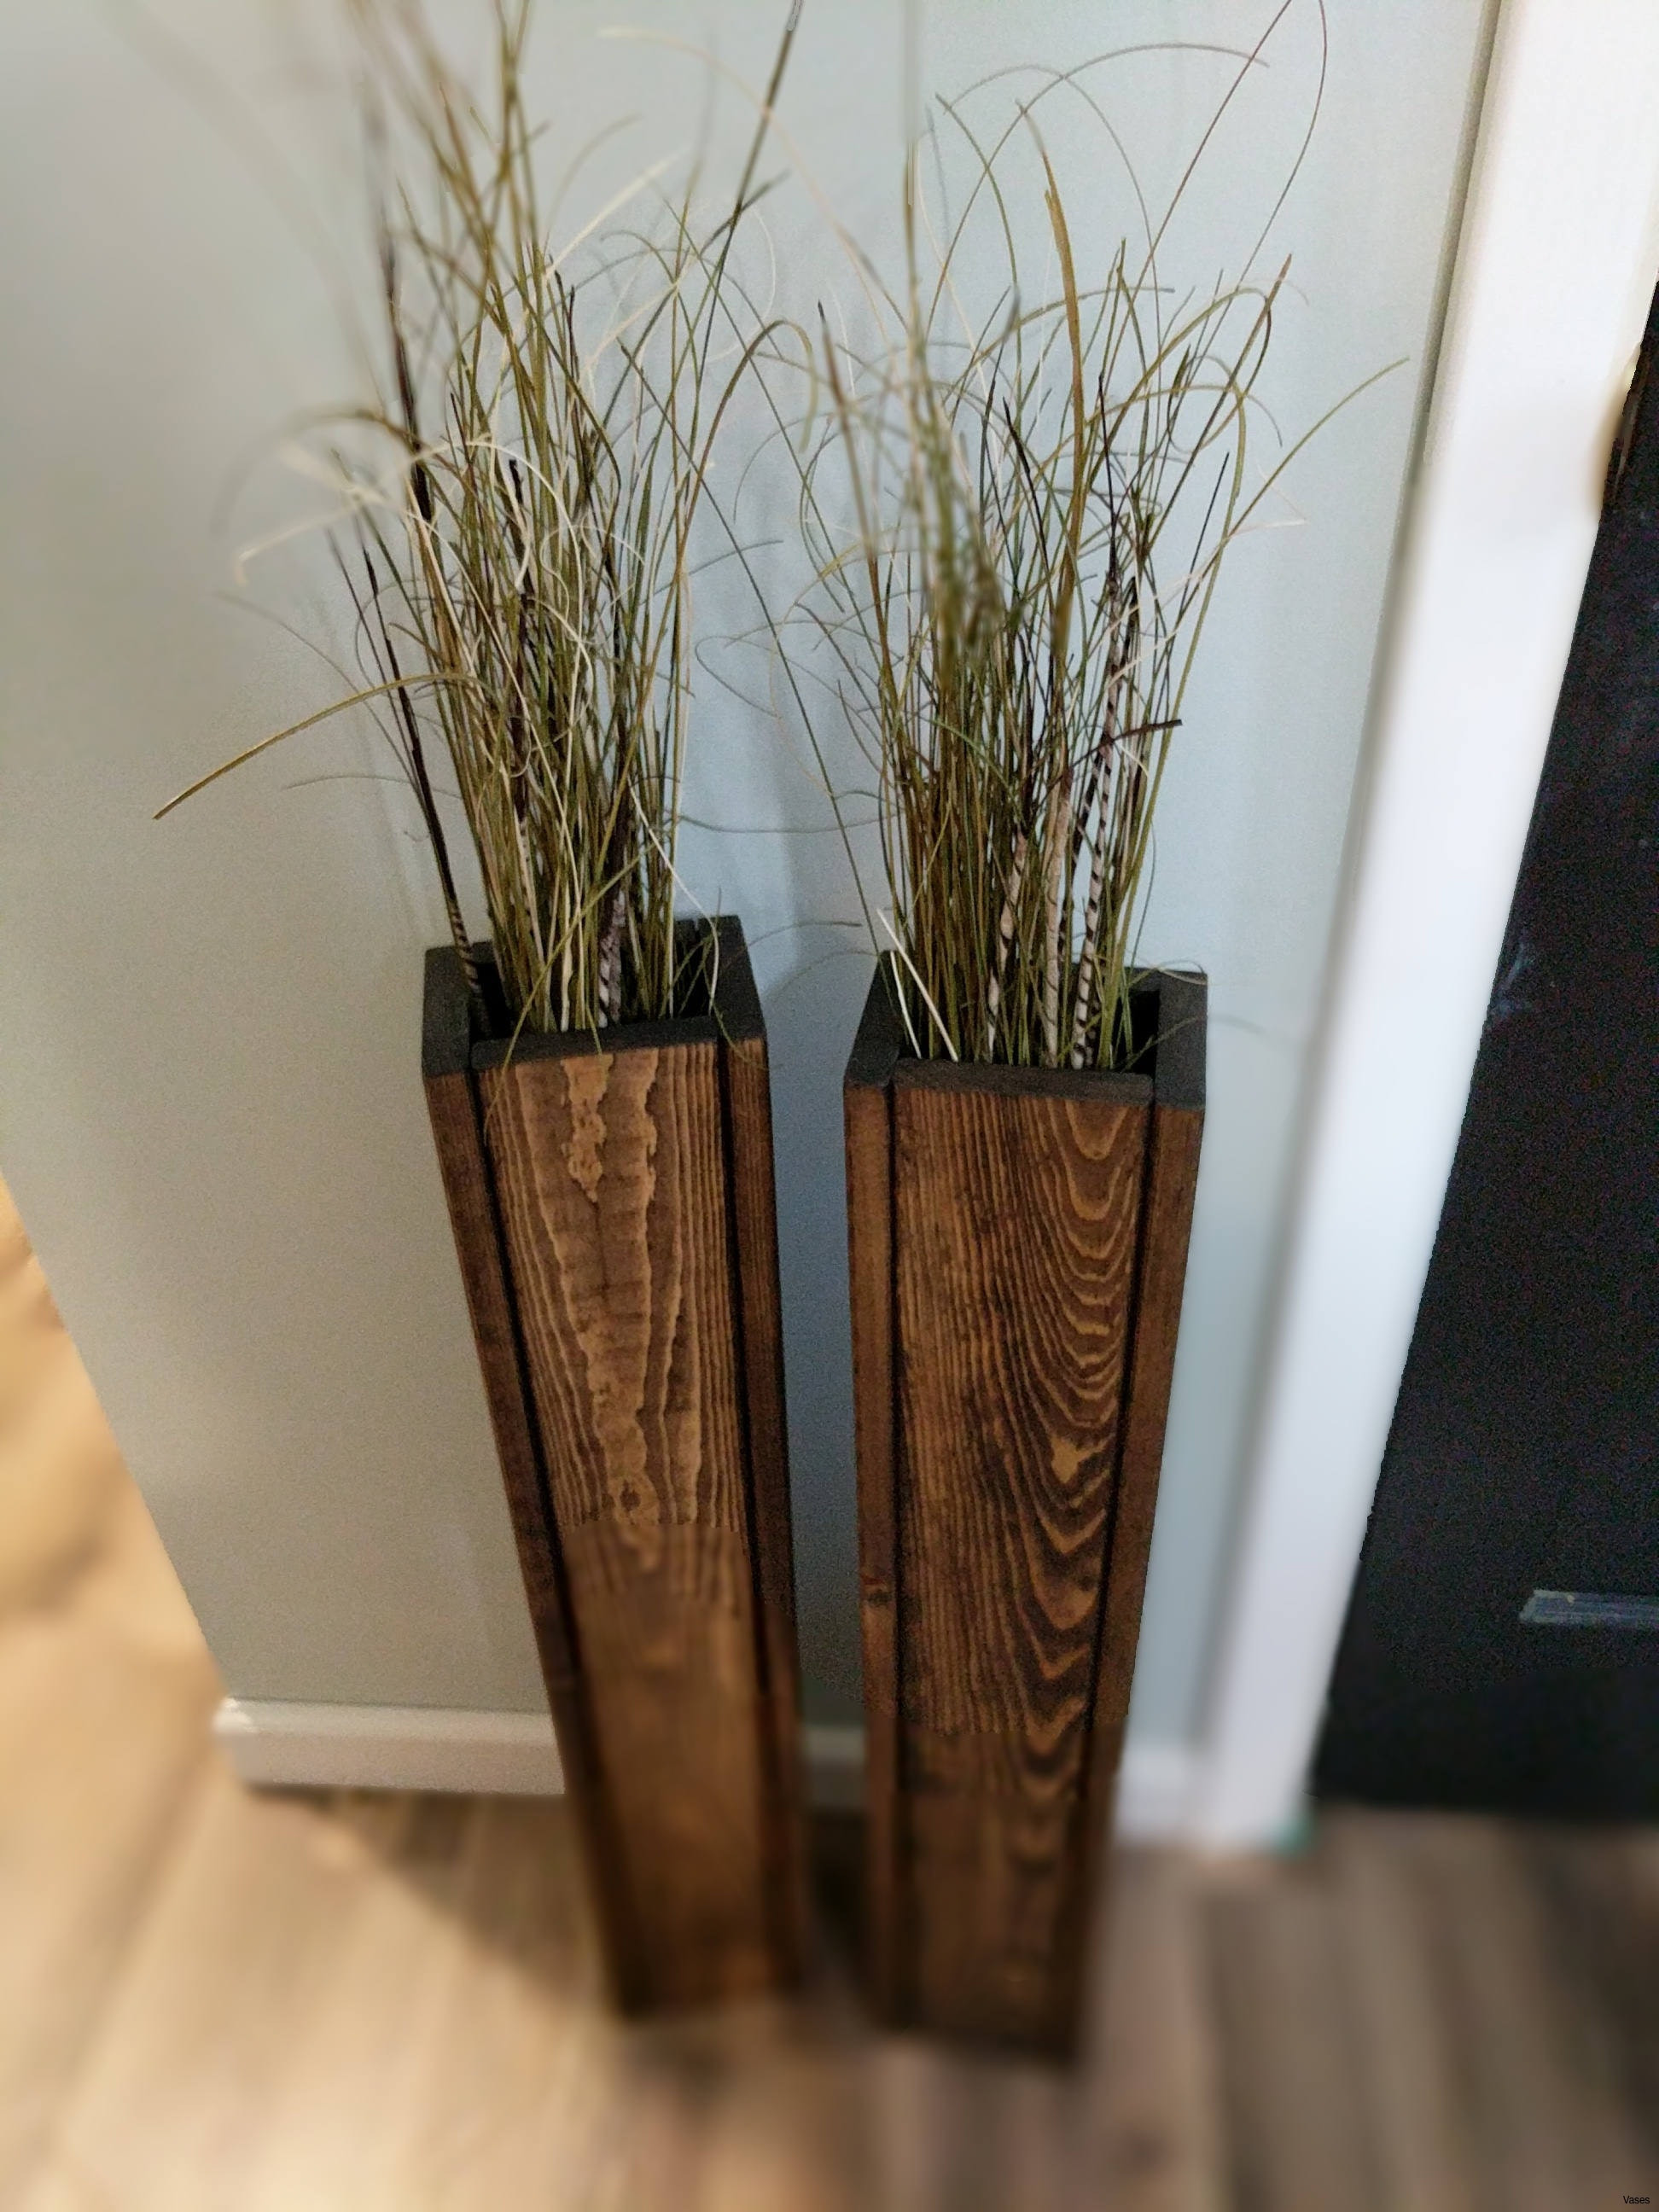 Metal Vases at Hobby Lobby Of Hobby Lobby Tall Vases Collection Hobby Lobby Table Lamps Design with Regard to Hobby Lobby Tall Vases Collection Hobby Lobby Table Lamps Design Ideas Staggering Vases Vase with Of